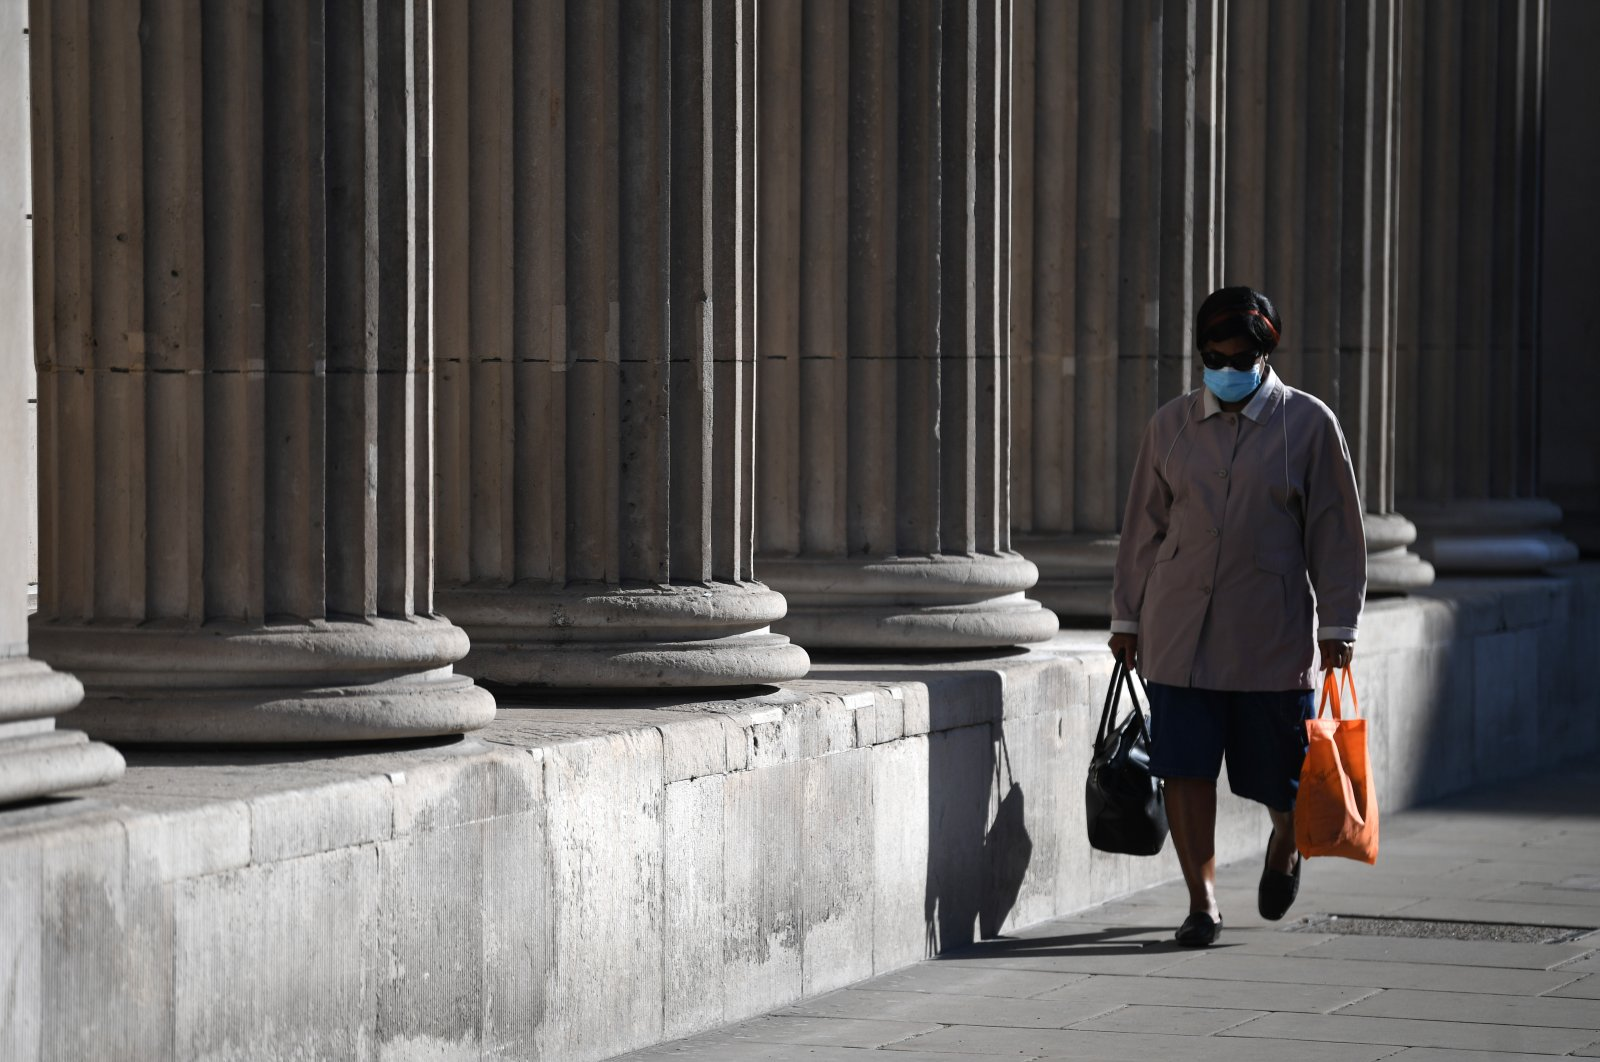 A masked woman passes the Bank of England in The City of London financial district in London, Britain, 15 April 2020. (EPA-EFE/NEIL HALL Photo)